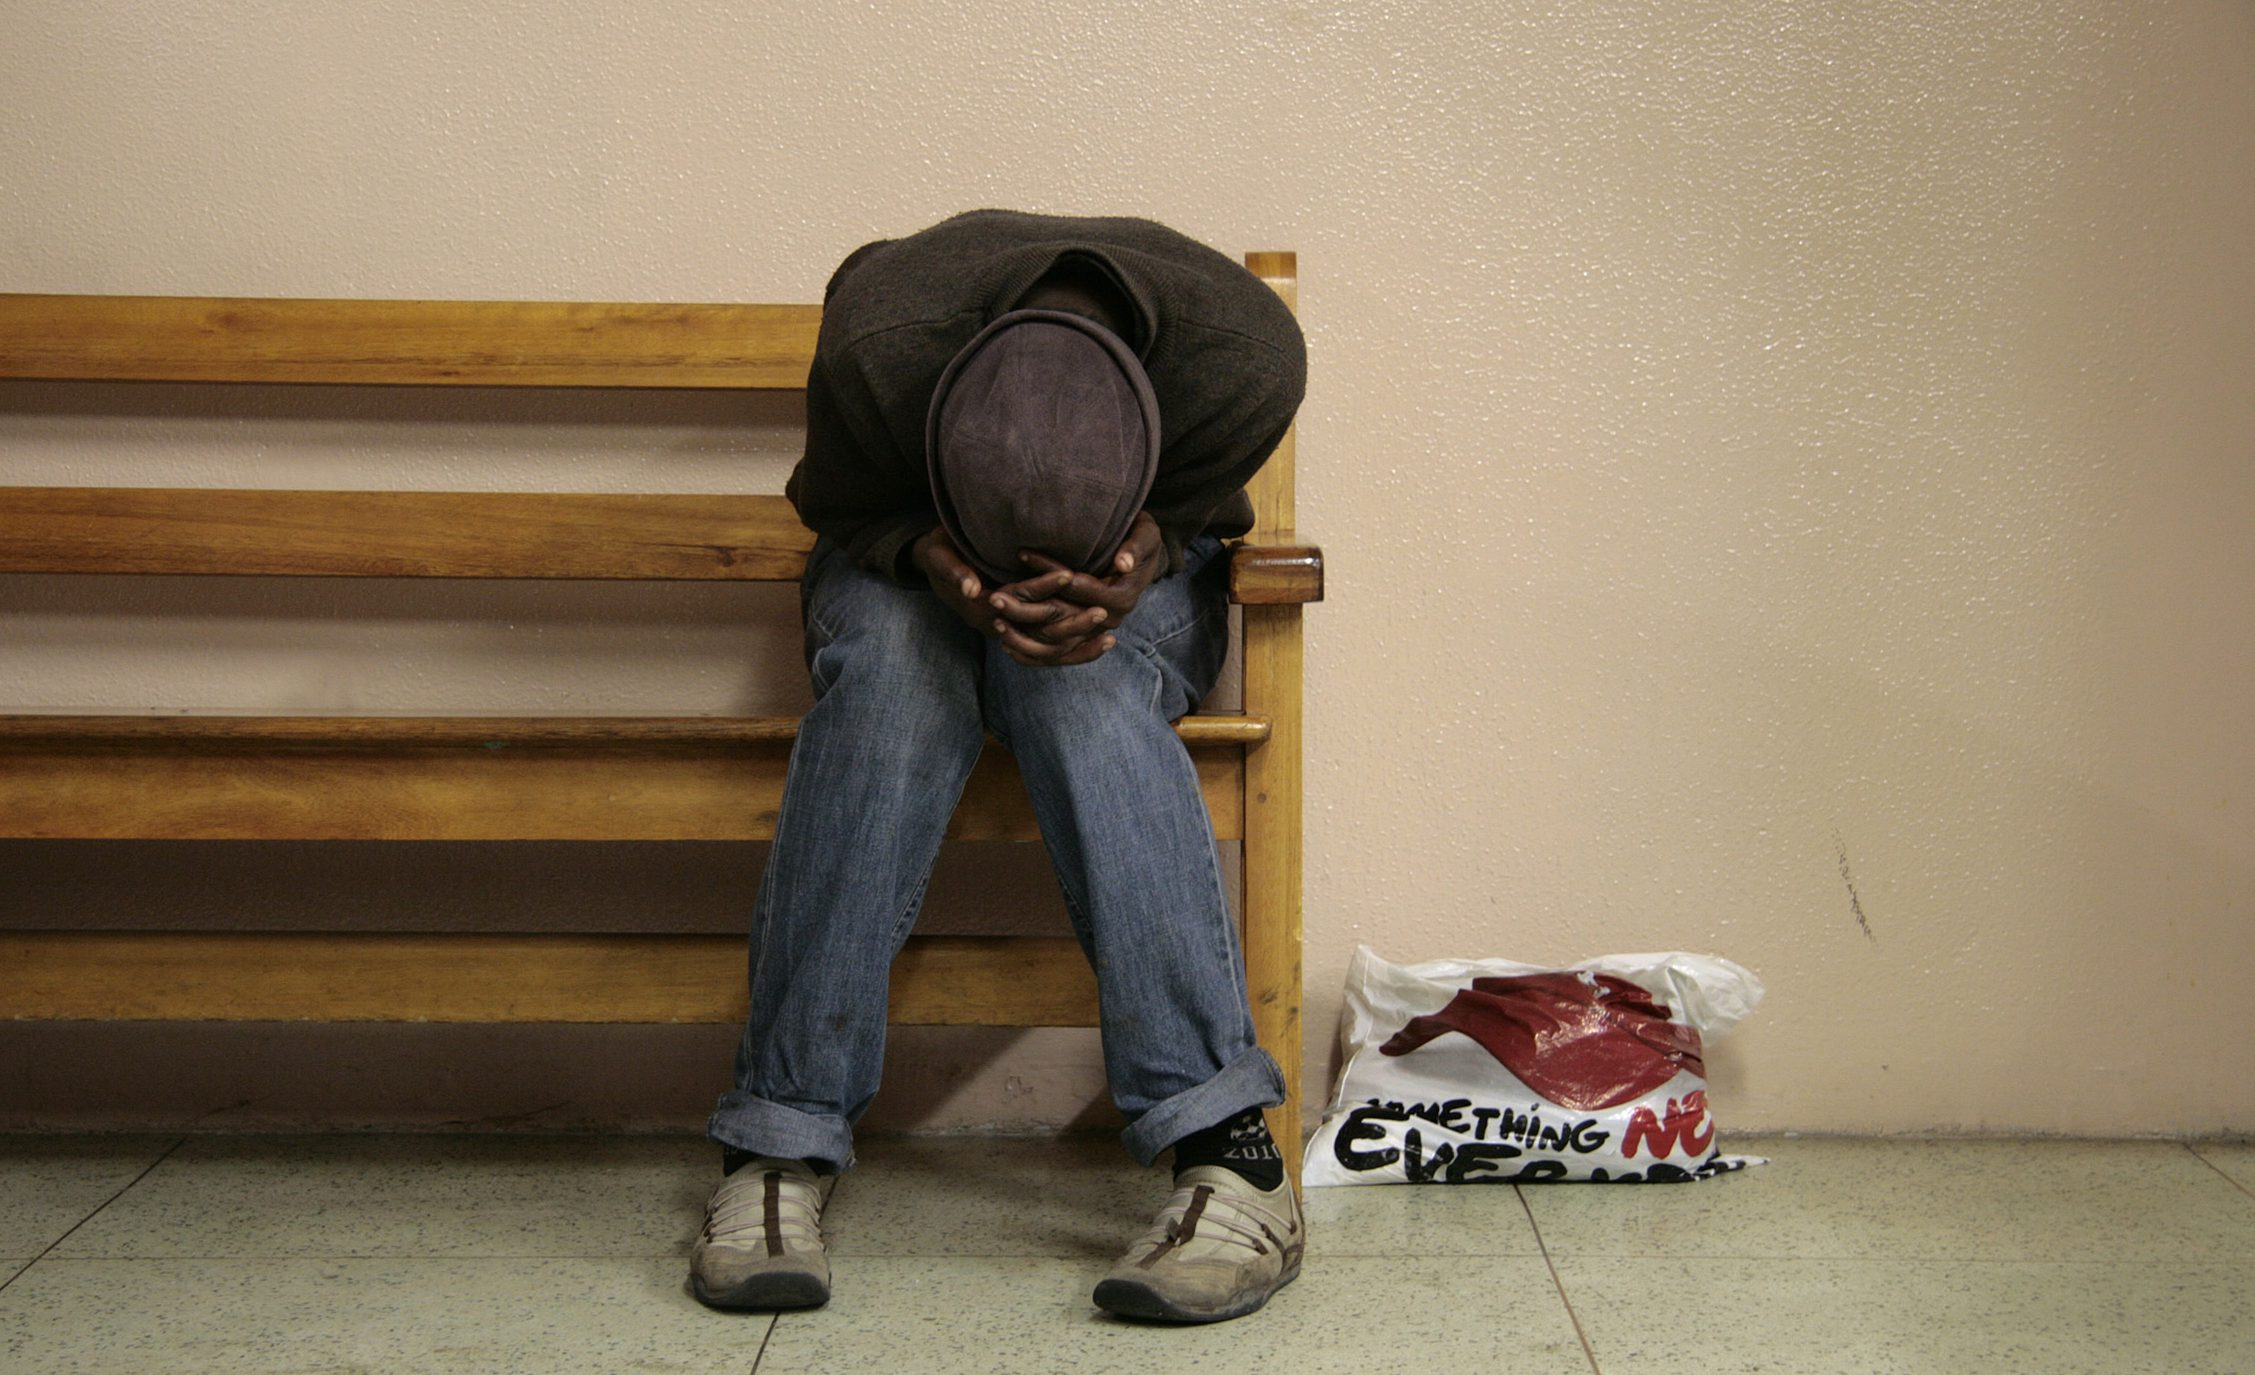 A Zimbabwean man takes refuge at the Milnerton police station after fleeing a fresh outbreak of anti-foreigner violence in Cape Town May 22, 2008.